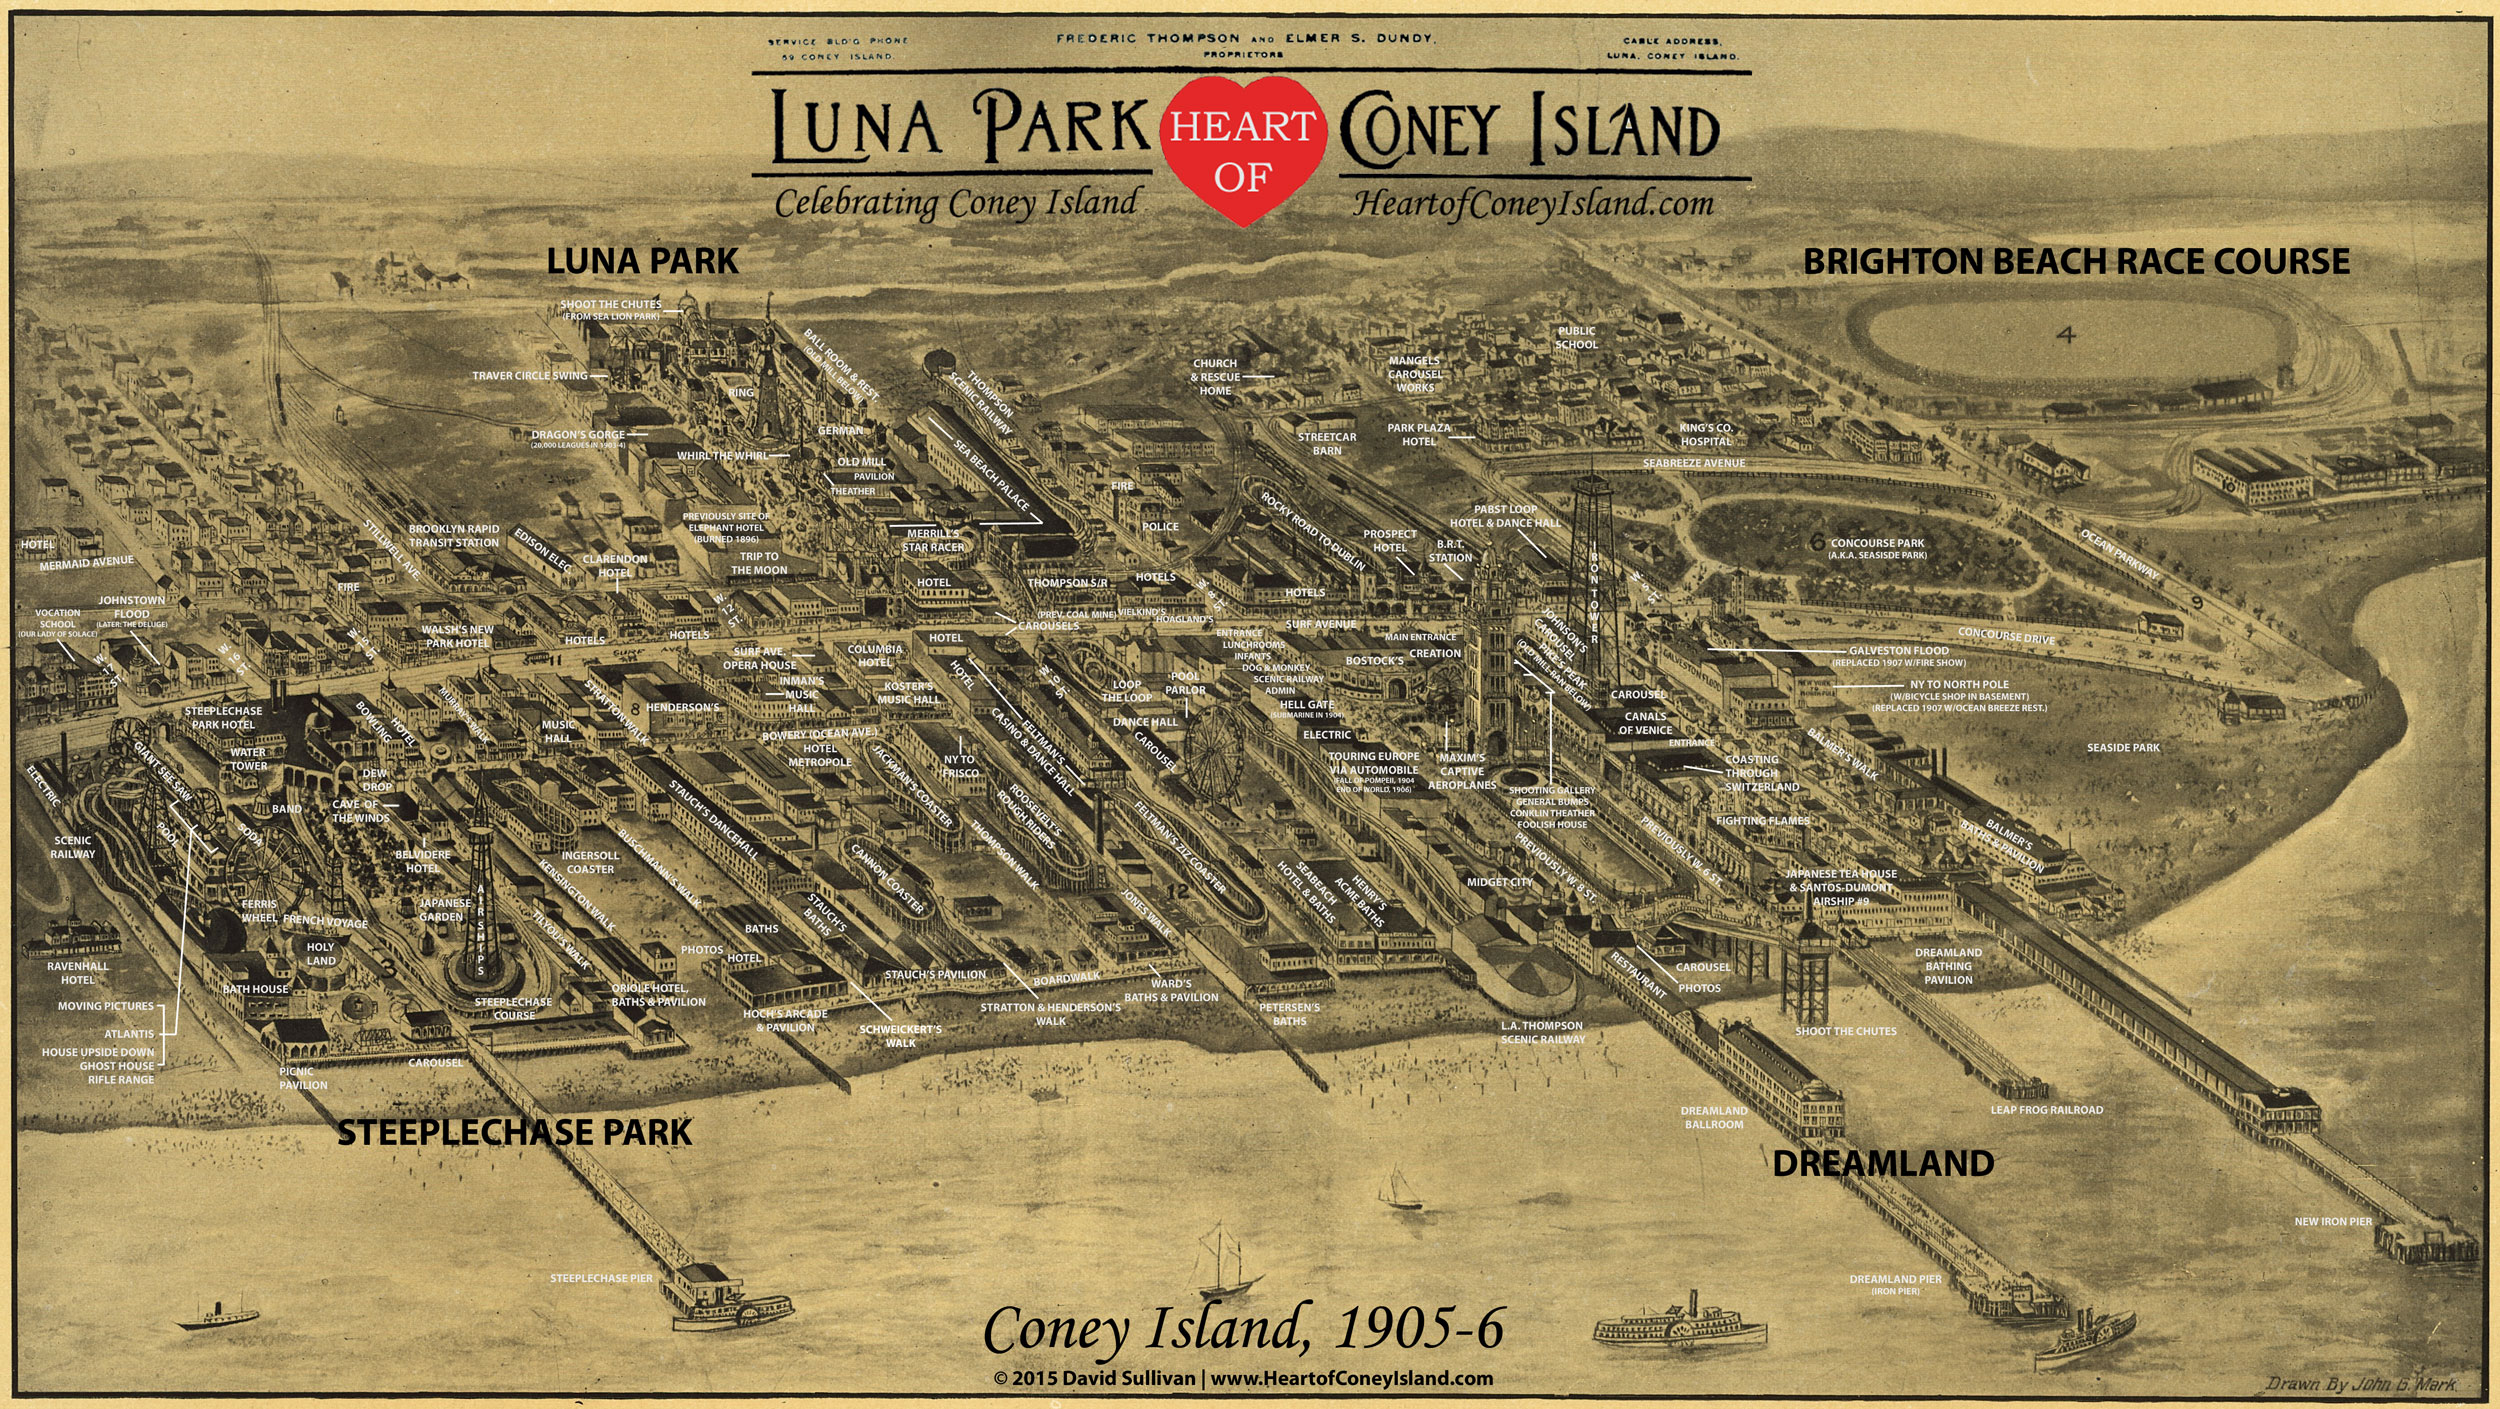 Coney Island Historical Map | Vintage Map of Amut Parks on united states map, history articles, history label, asia map, history text, hawaii map, national park map, history culture, topographical map, travel map, middle east map, lake map, history jobs, history search, history about european explorers, history education, flat map, history globe, park map, history review, history information, history film, history paper, history dictionary, history geography, history flowcharts, history food, site map, history school, history clock, exploration map, vision map, history of it, mexico map, america map, history research, peak map, scotland map,